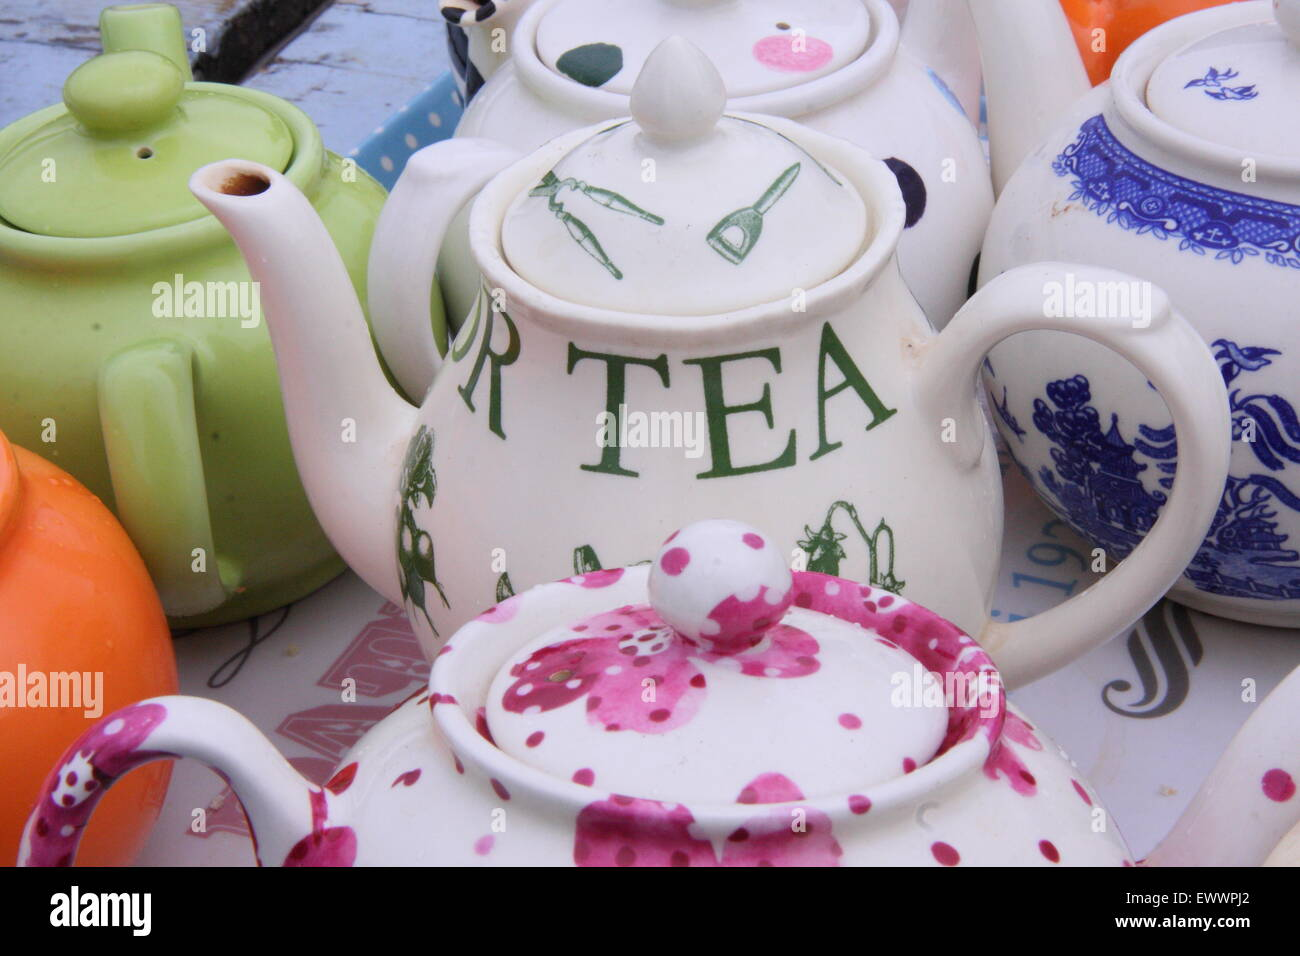 Traditional crock teapots at a vintage style tea stall at Chatsworth Country Fair, Peak District Derbyshire England - Stock Image